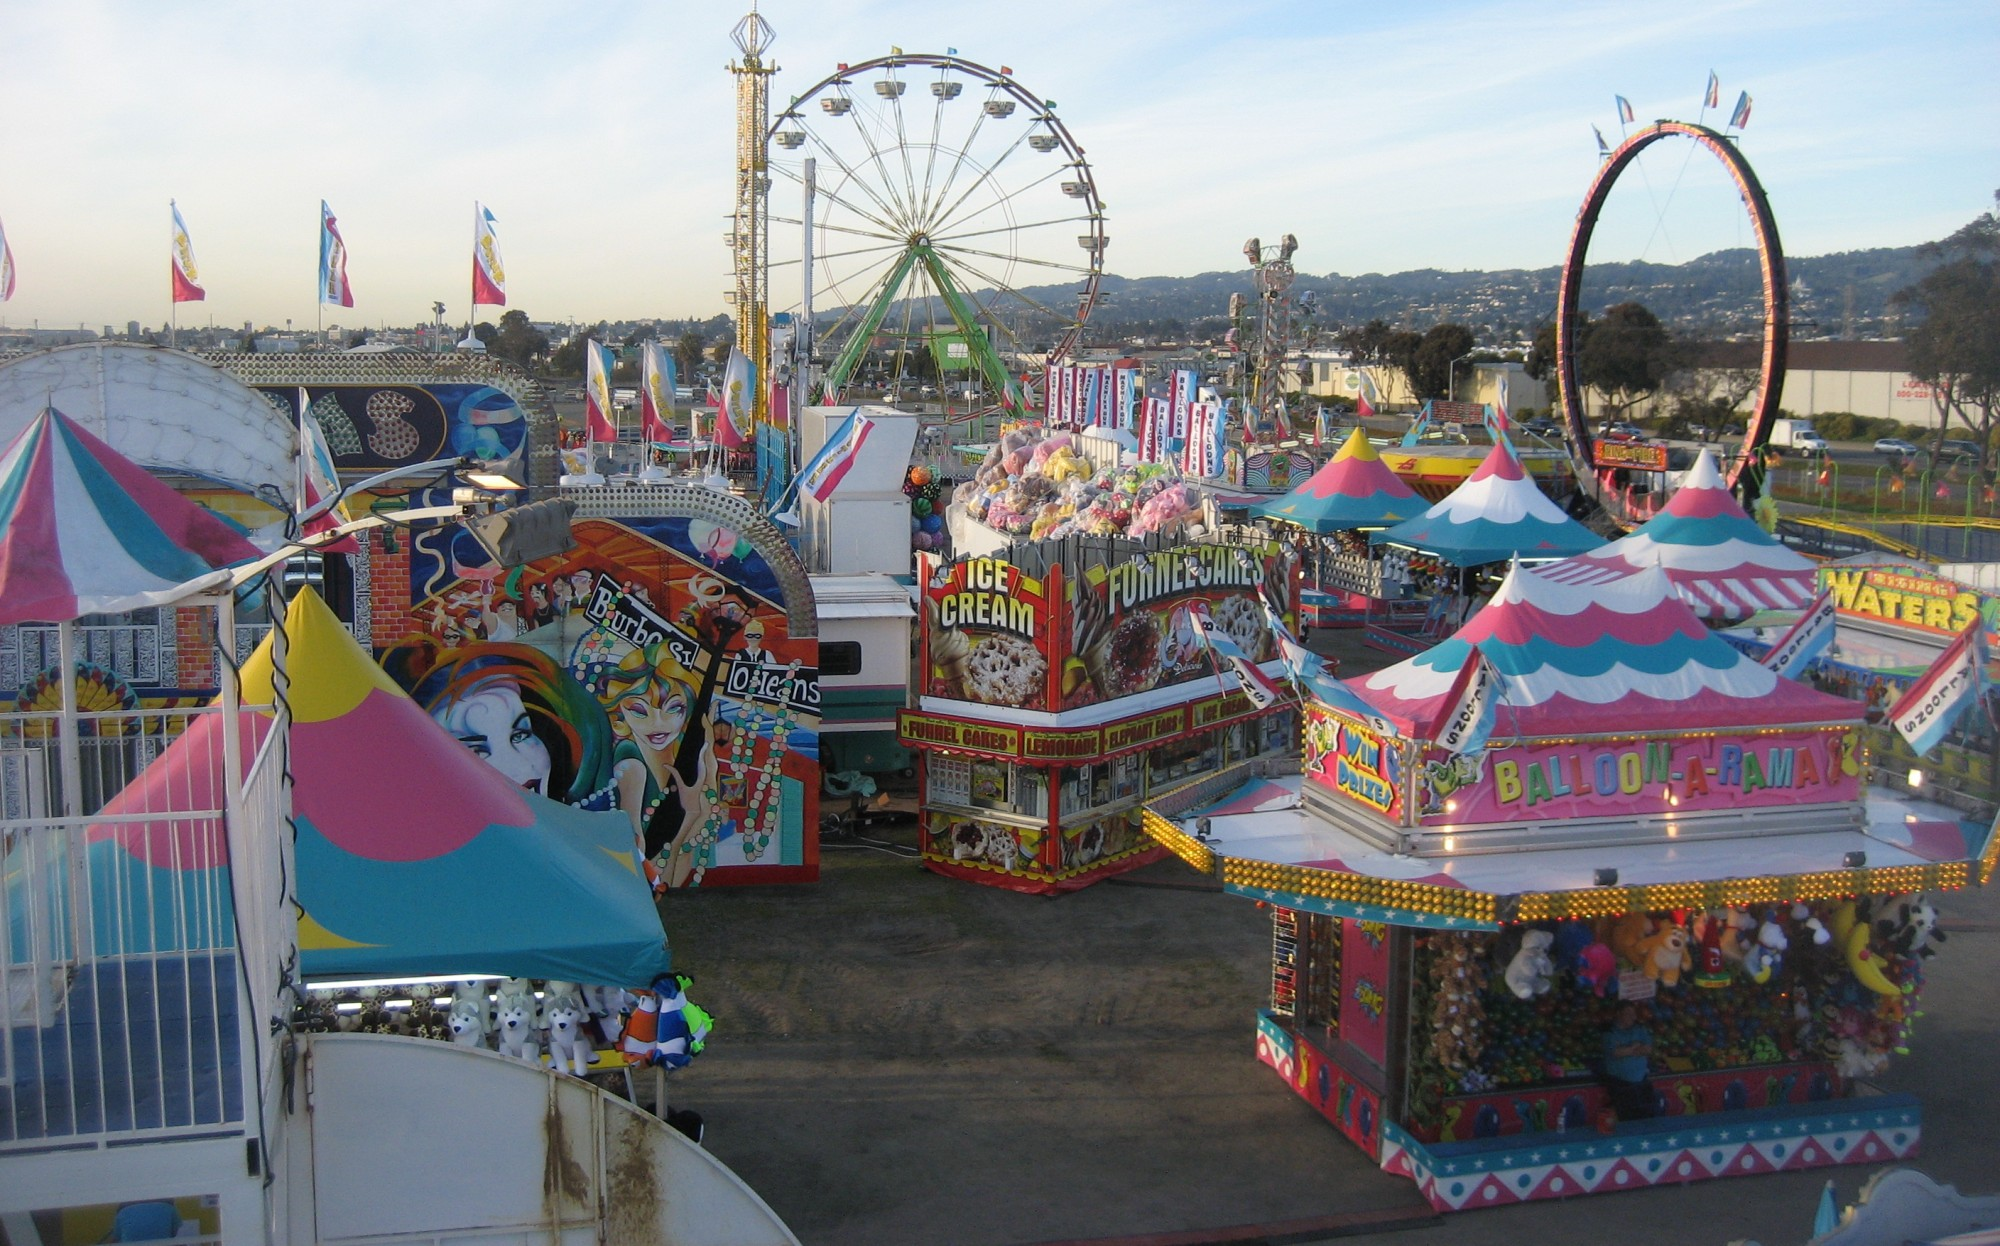 Carnival Fair in the Morning 300.33 Kb